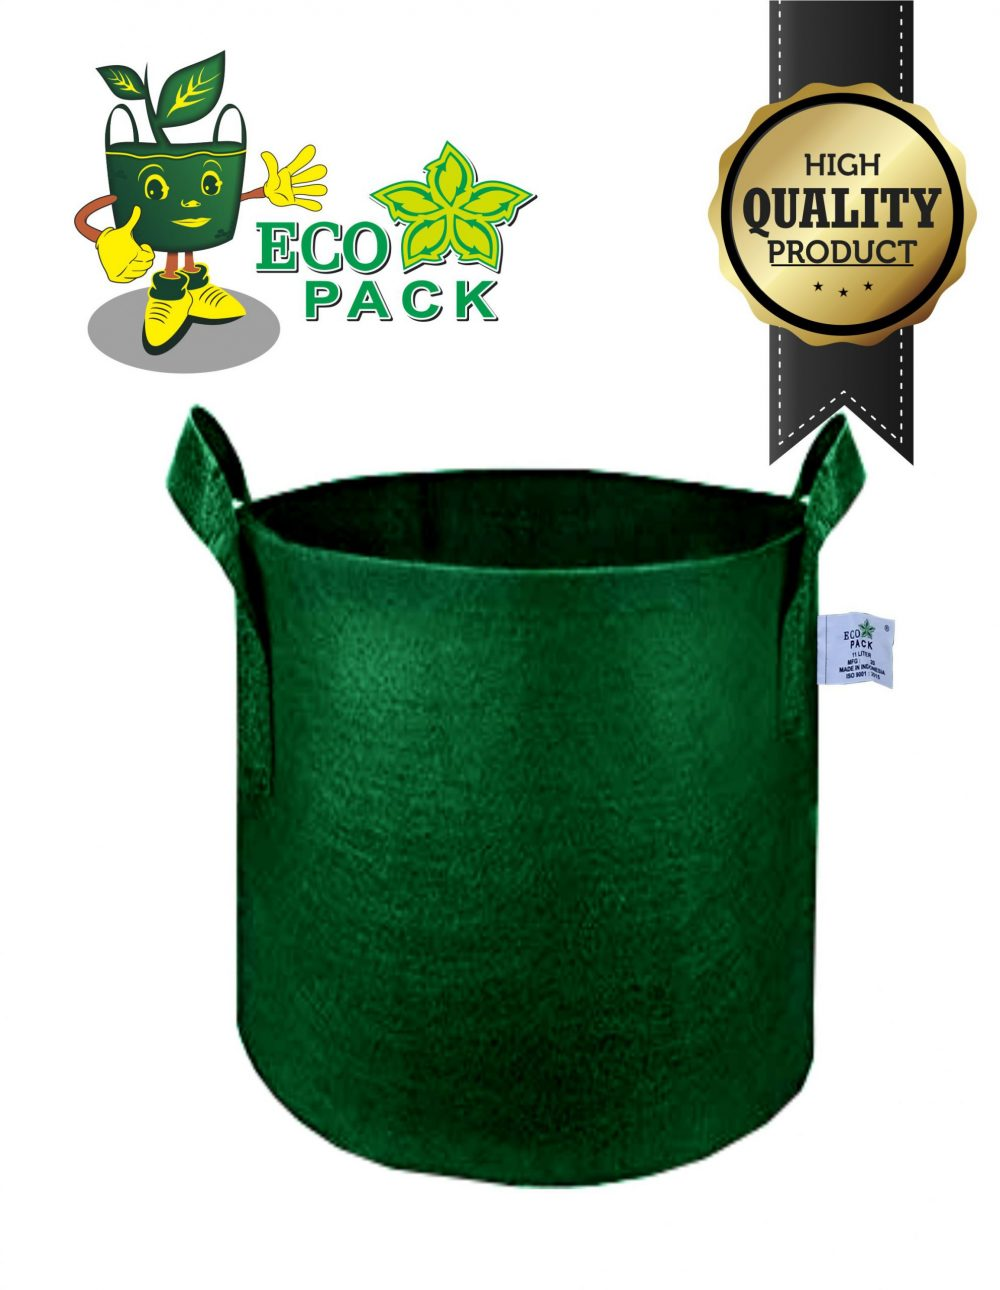 Planter Bag Eco Pack